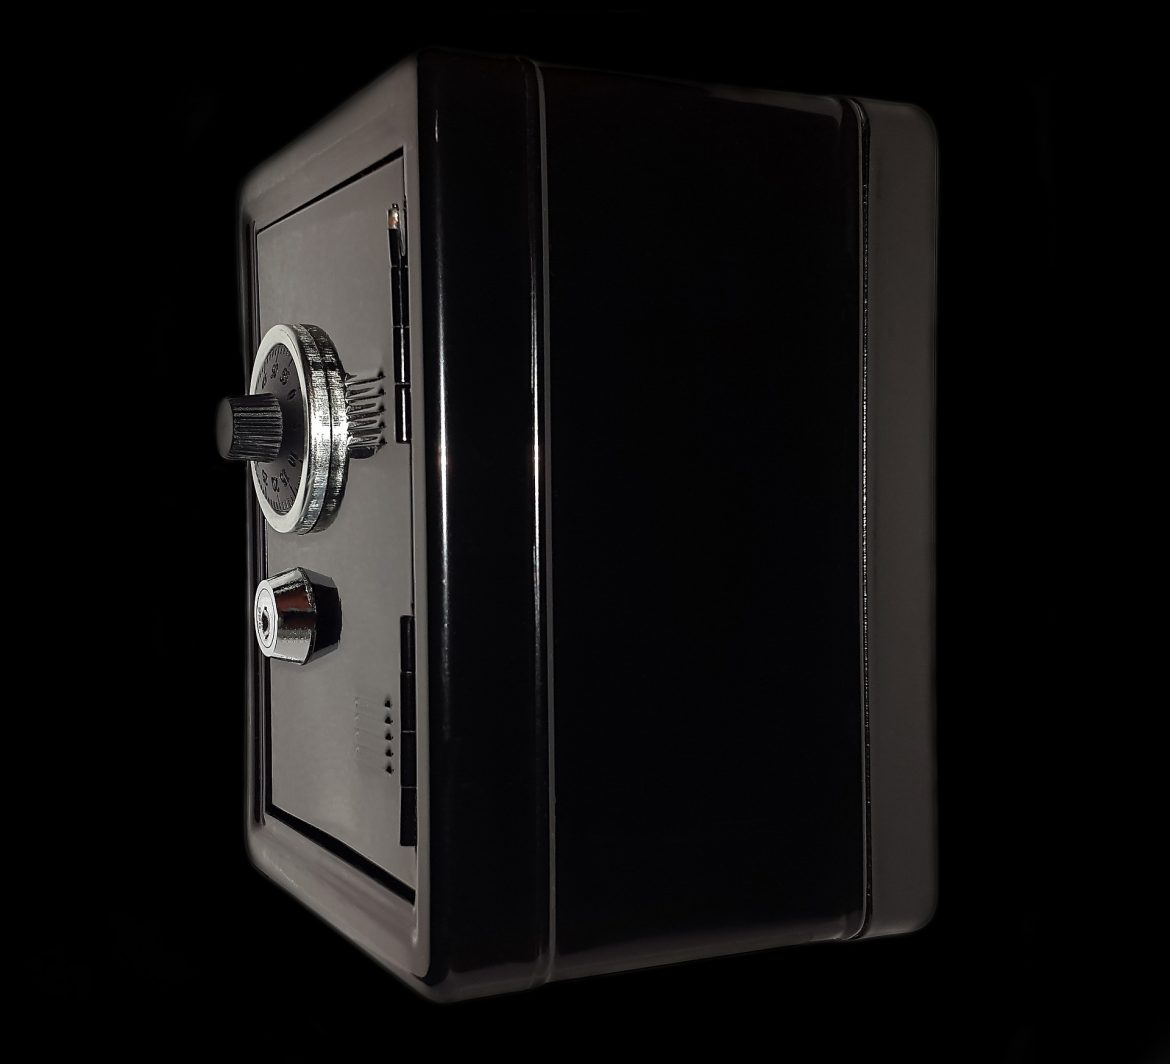 10 Best Handgun Safe Reviewed & Compared for 2019